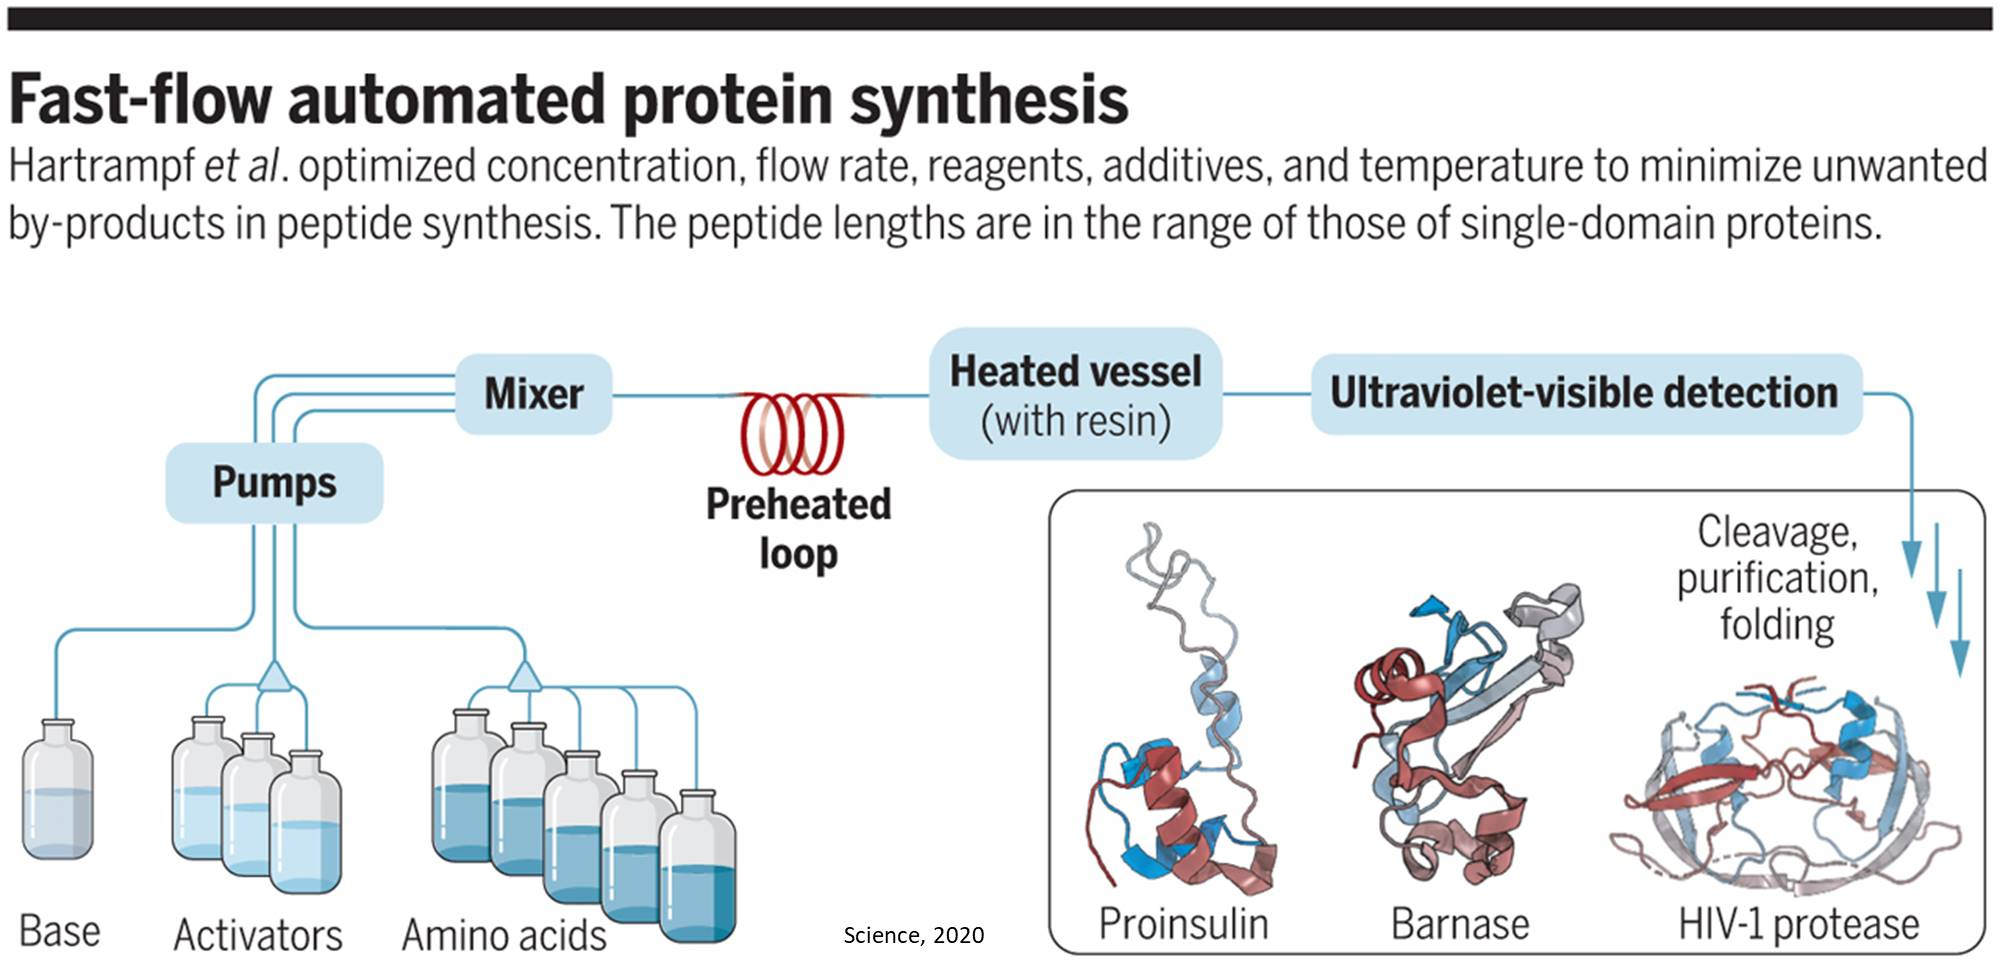 Automated flow synthesis of proteins in the lab